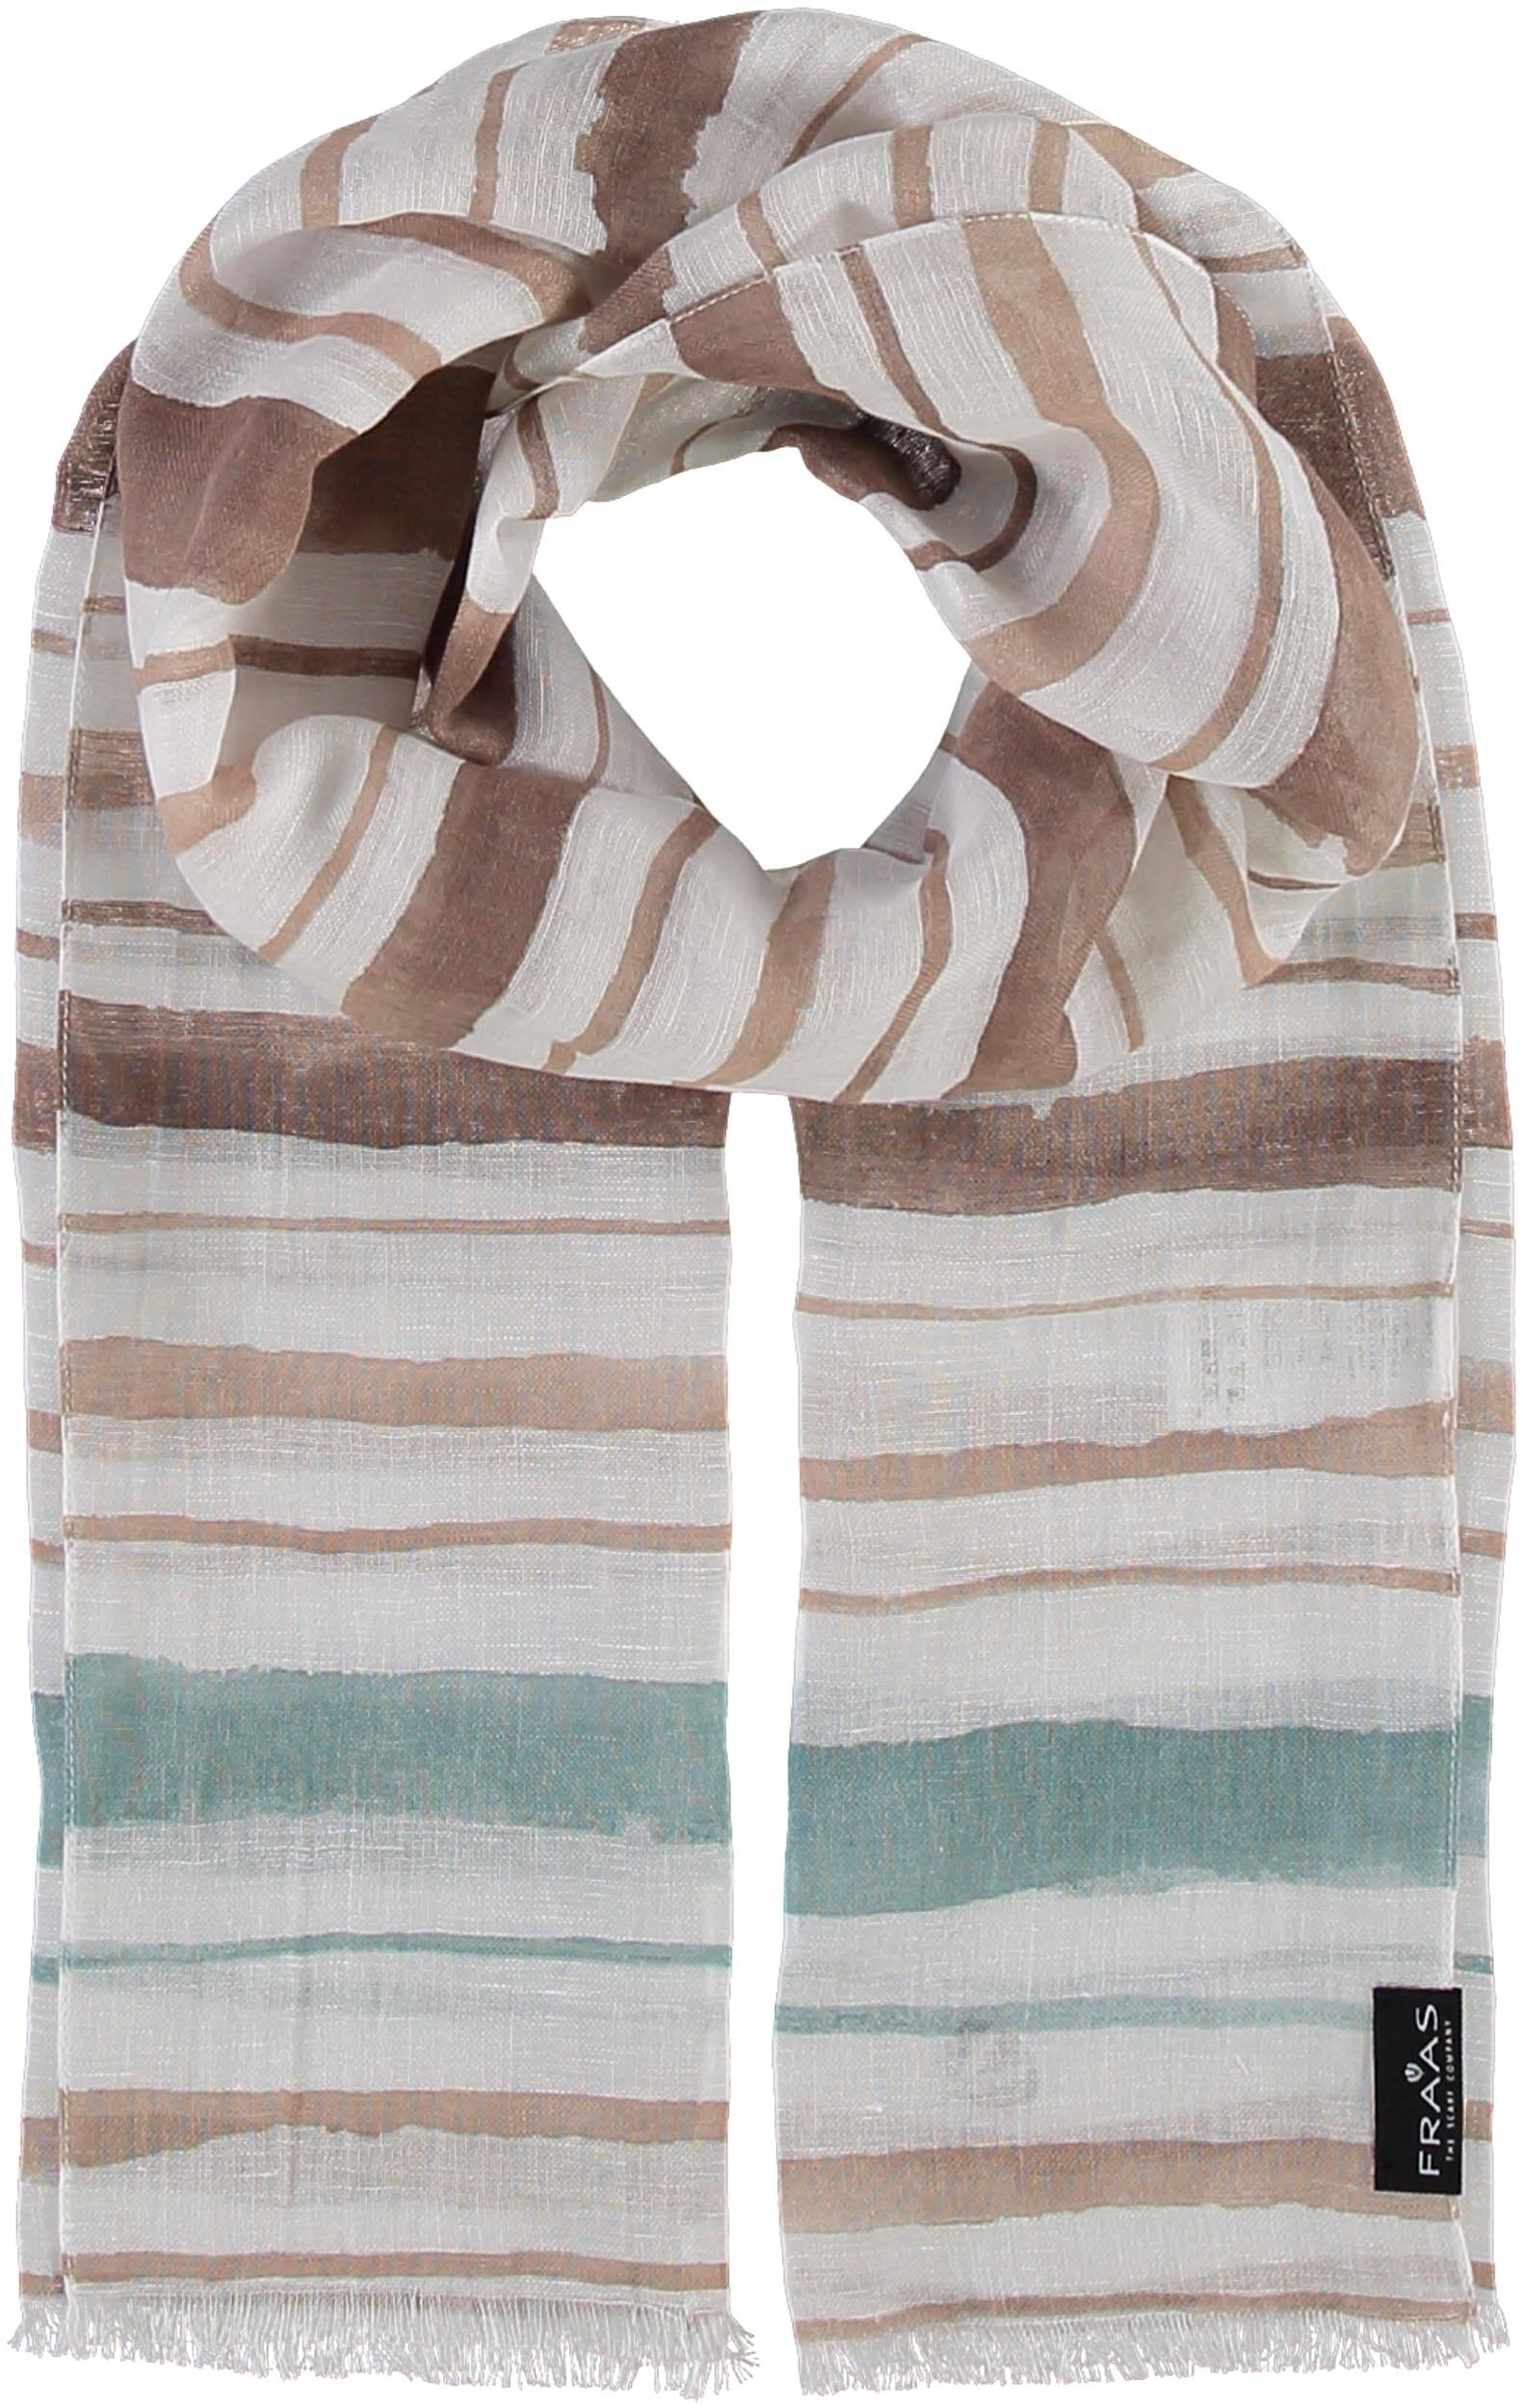 Water Stripes Printed Cotton Linen Scarf